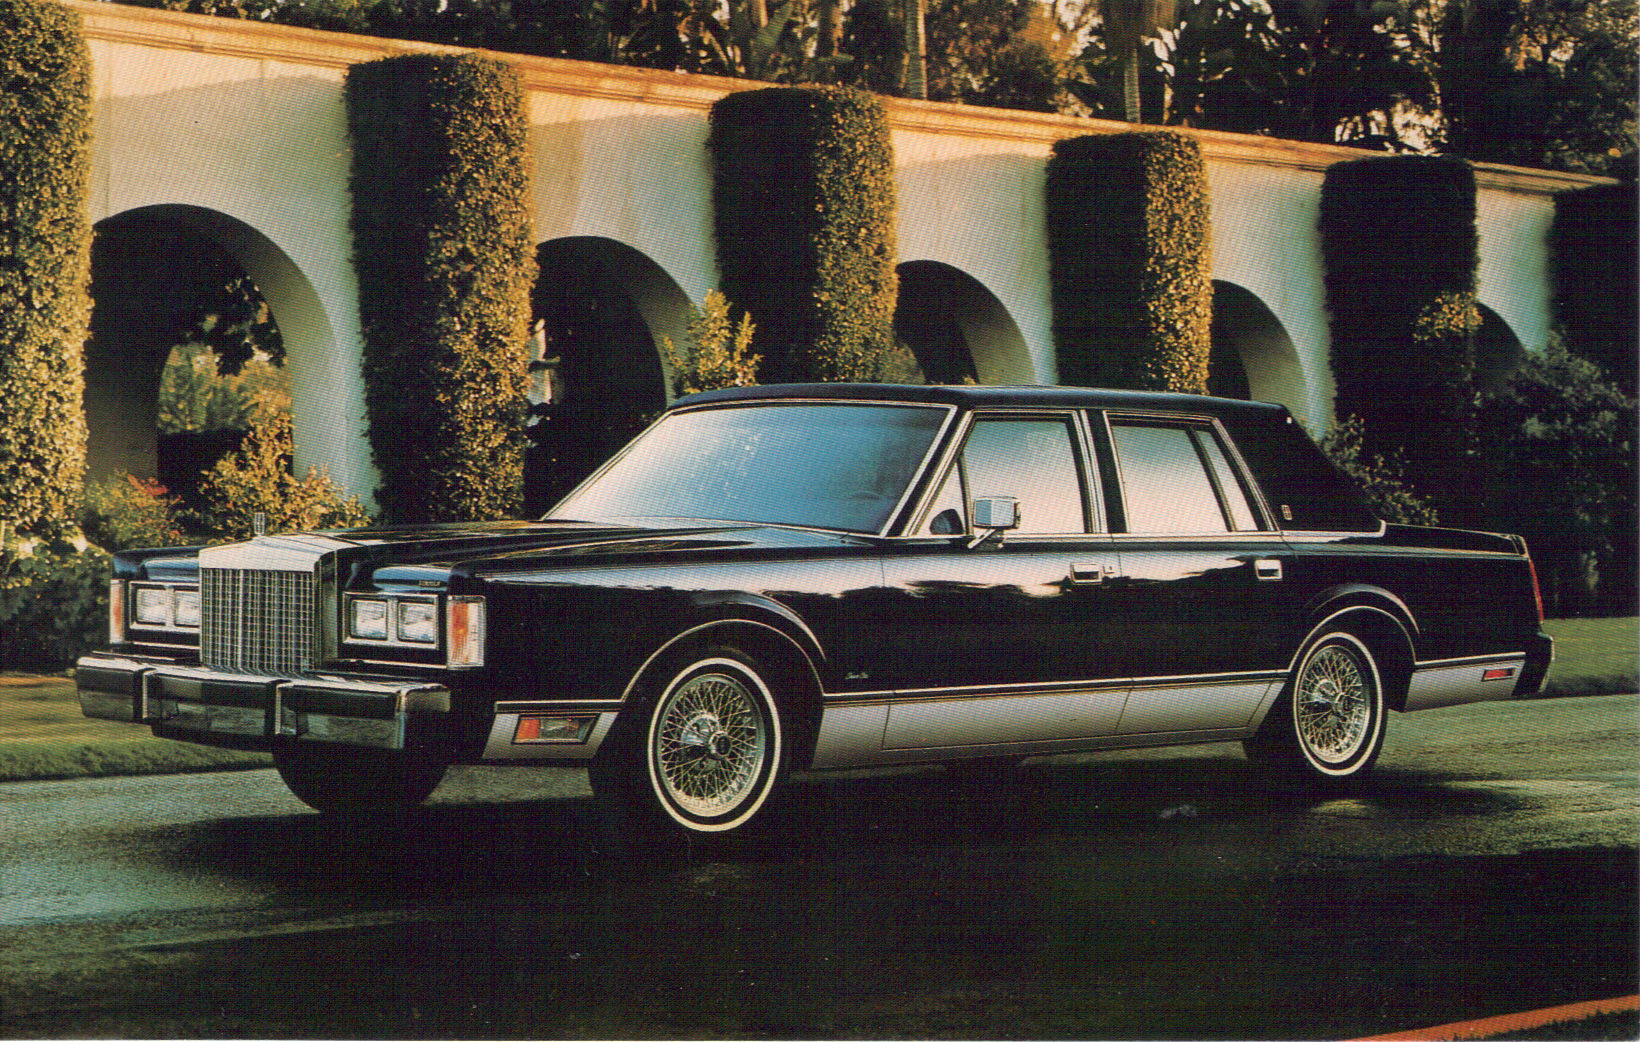 hight resolution of classics in traffic 1985 cadillac fleetwood brougham 1989 lincoln town car buses broughams